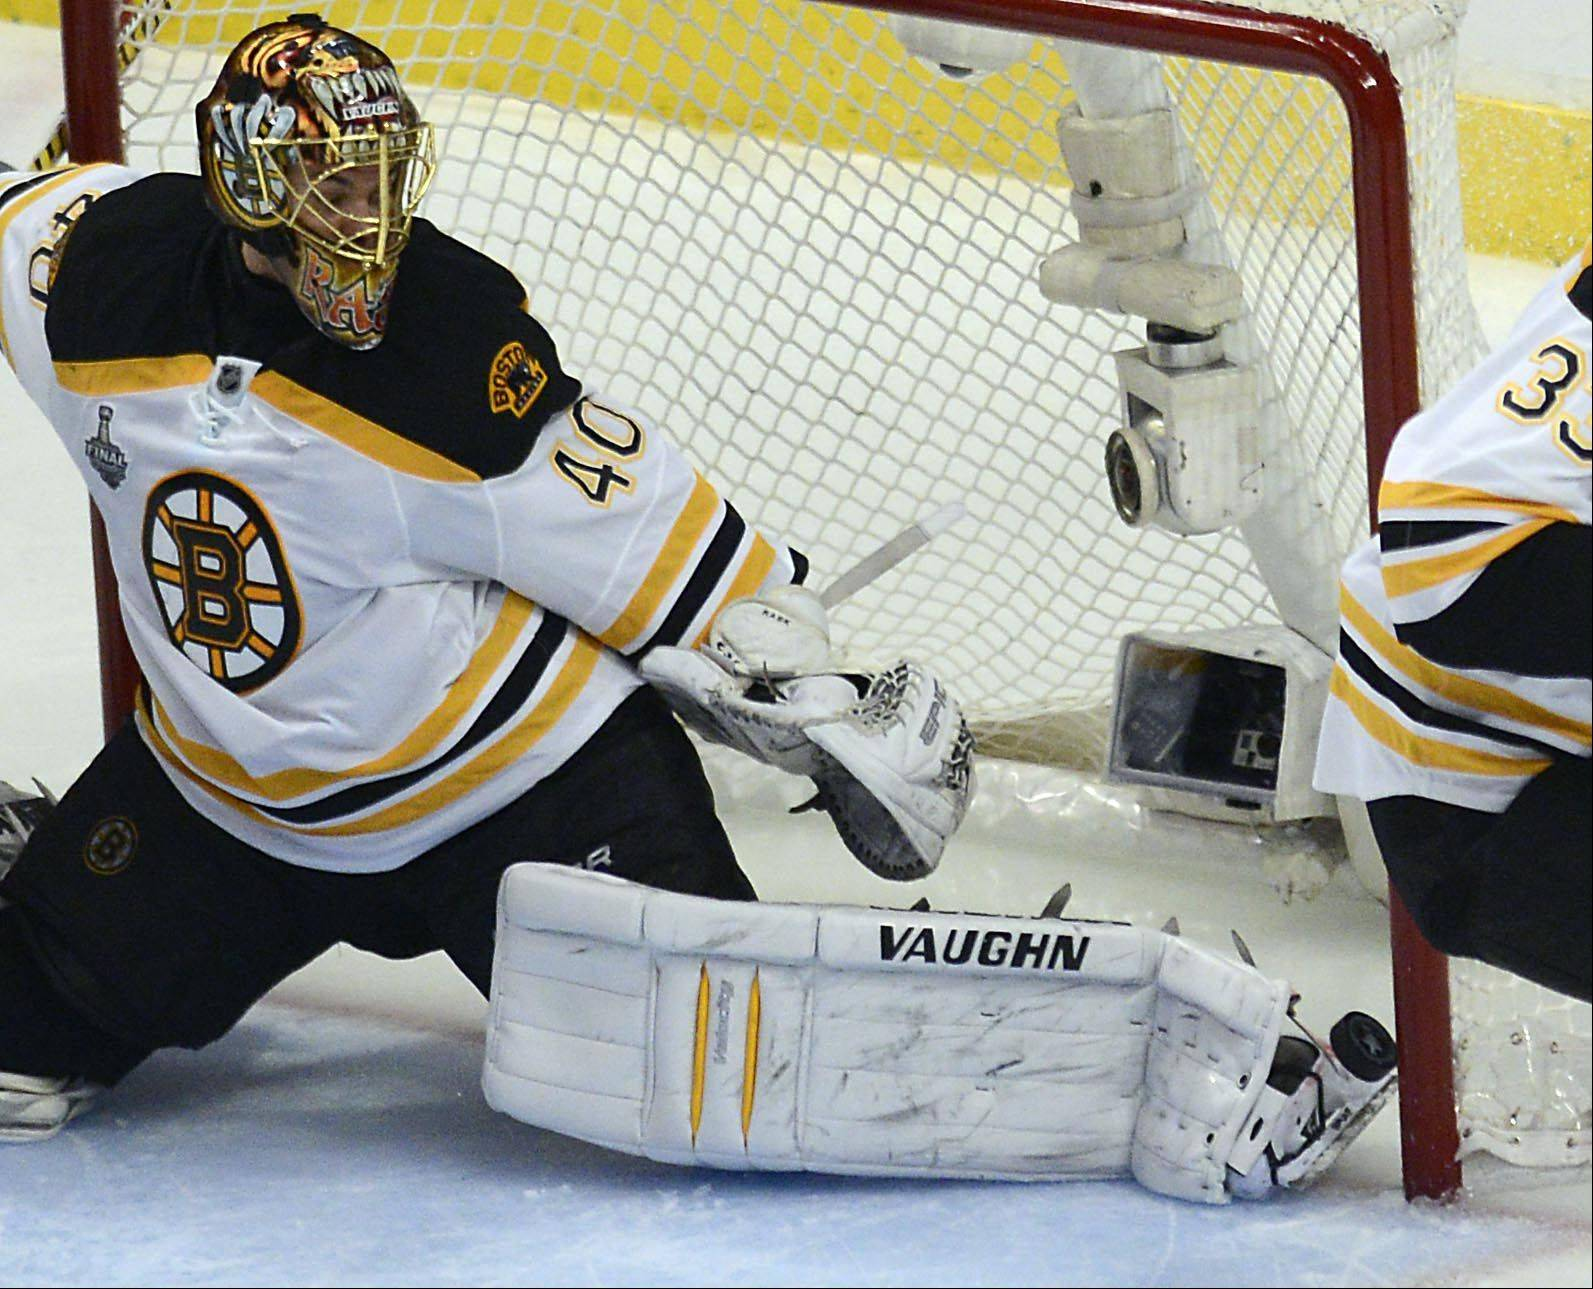 The puck get past Boston Bruins goalie Tuukka Rask on Chicago Blackhawks right wing Patrick Kane second goal Saturday in Game 5 of the Stanley Cup Finals at the United Center in Chicago.